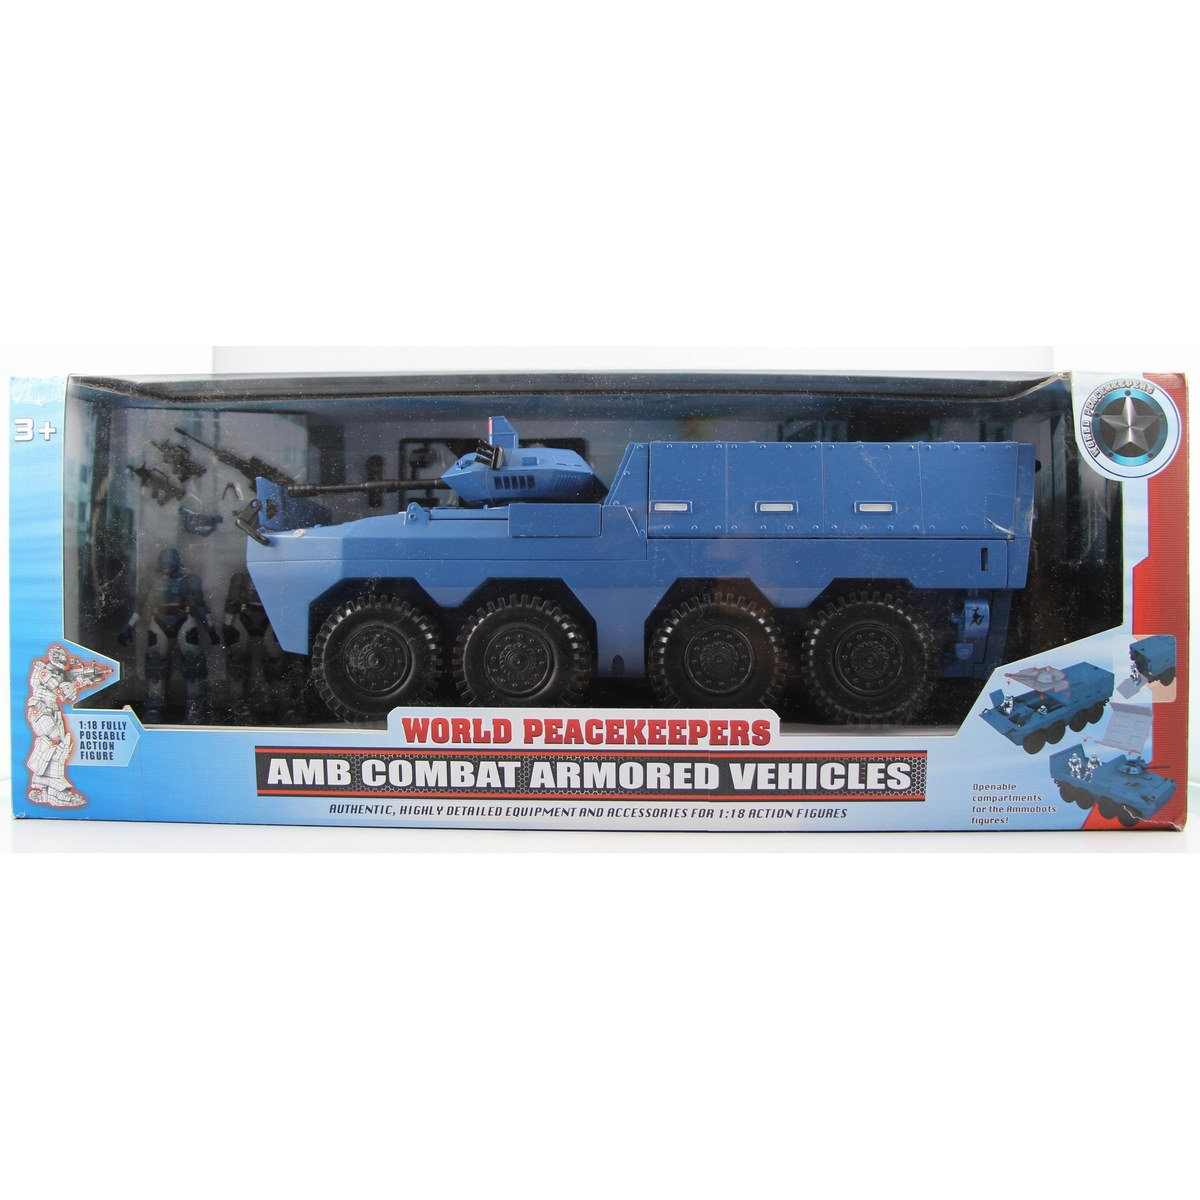 1/18 World Peacekeepers soldier AMB COMBAT ARMORED VEHICLES action figures Military model toy set for boy gift free shipping1/18 World Peacekeepers soldier AMB COMBAT ARMORED VEHICLES action figures Military model toy set for boy gift free shipping